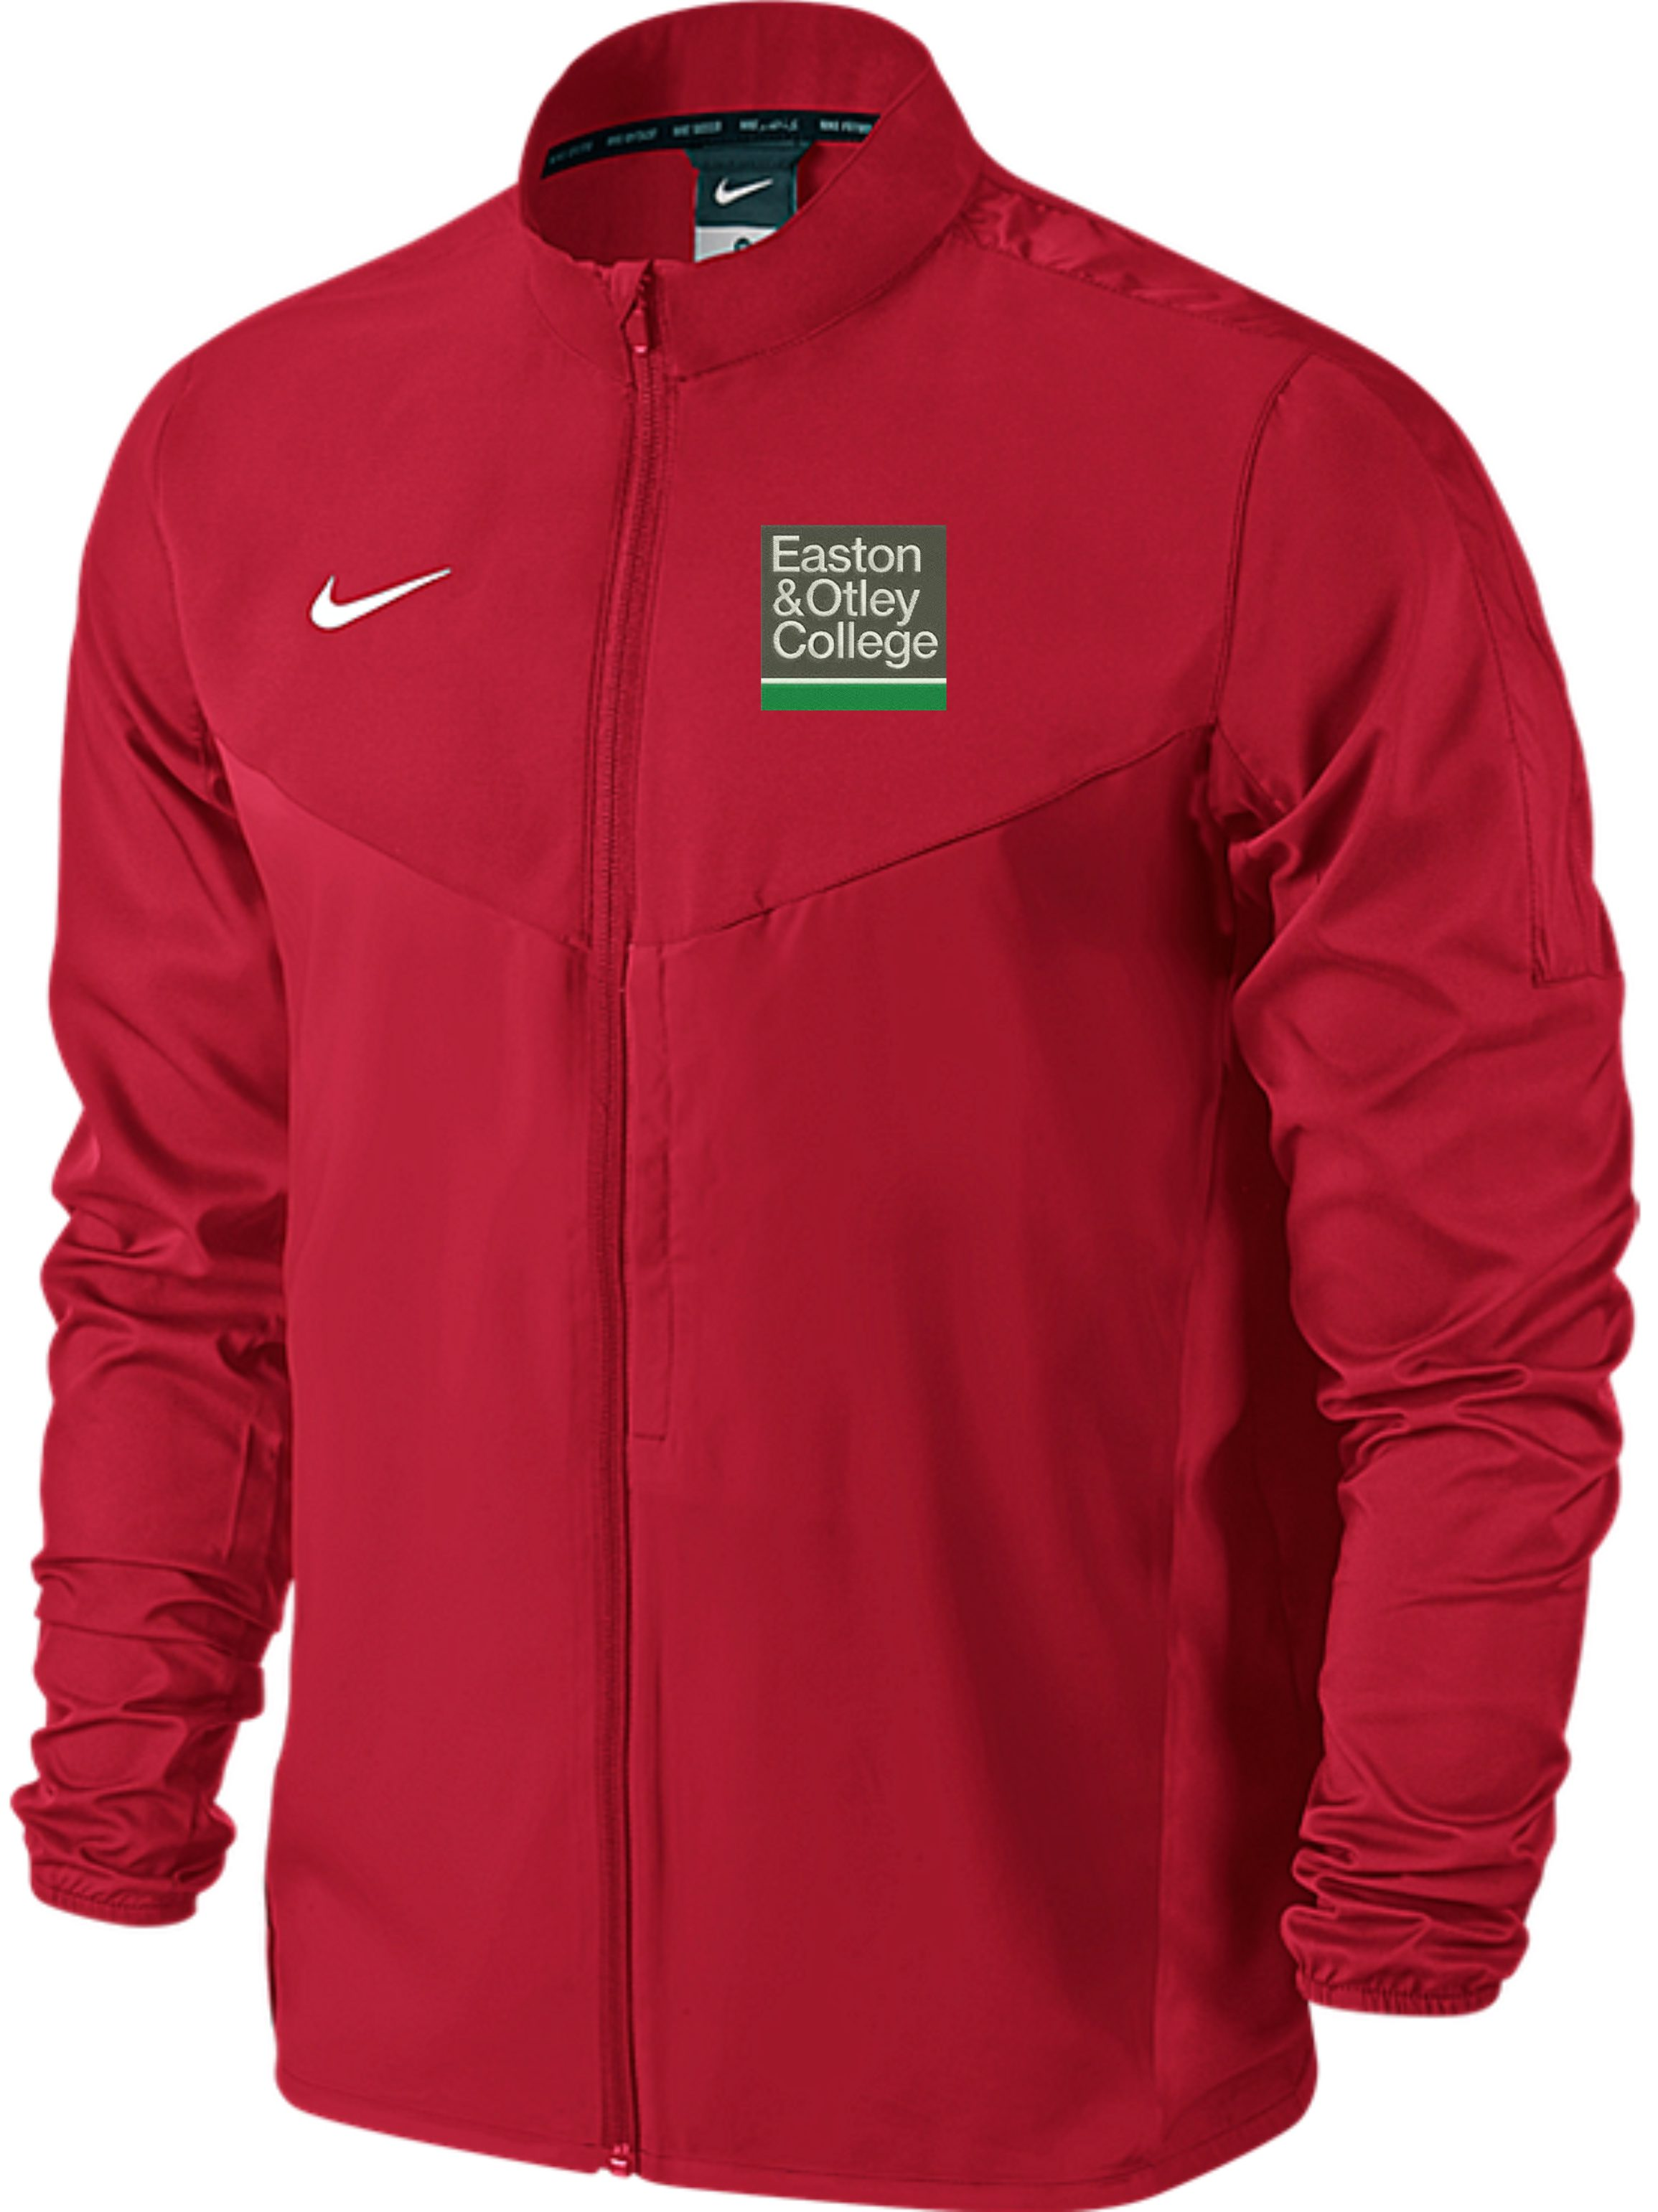 Easton Sports Staff Track Top